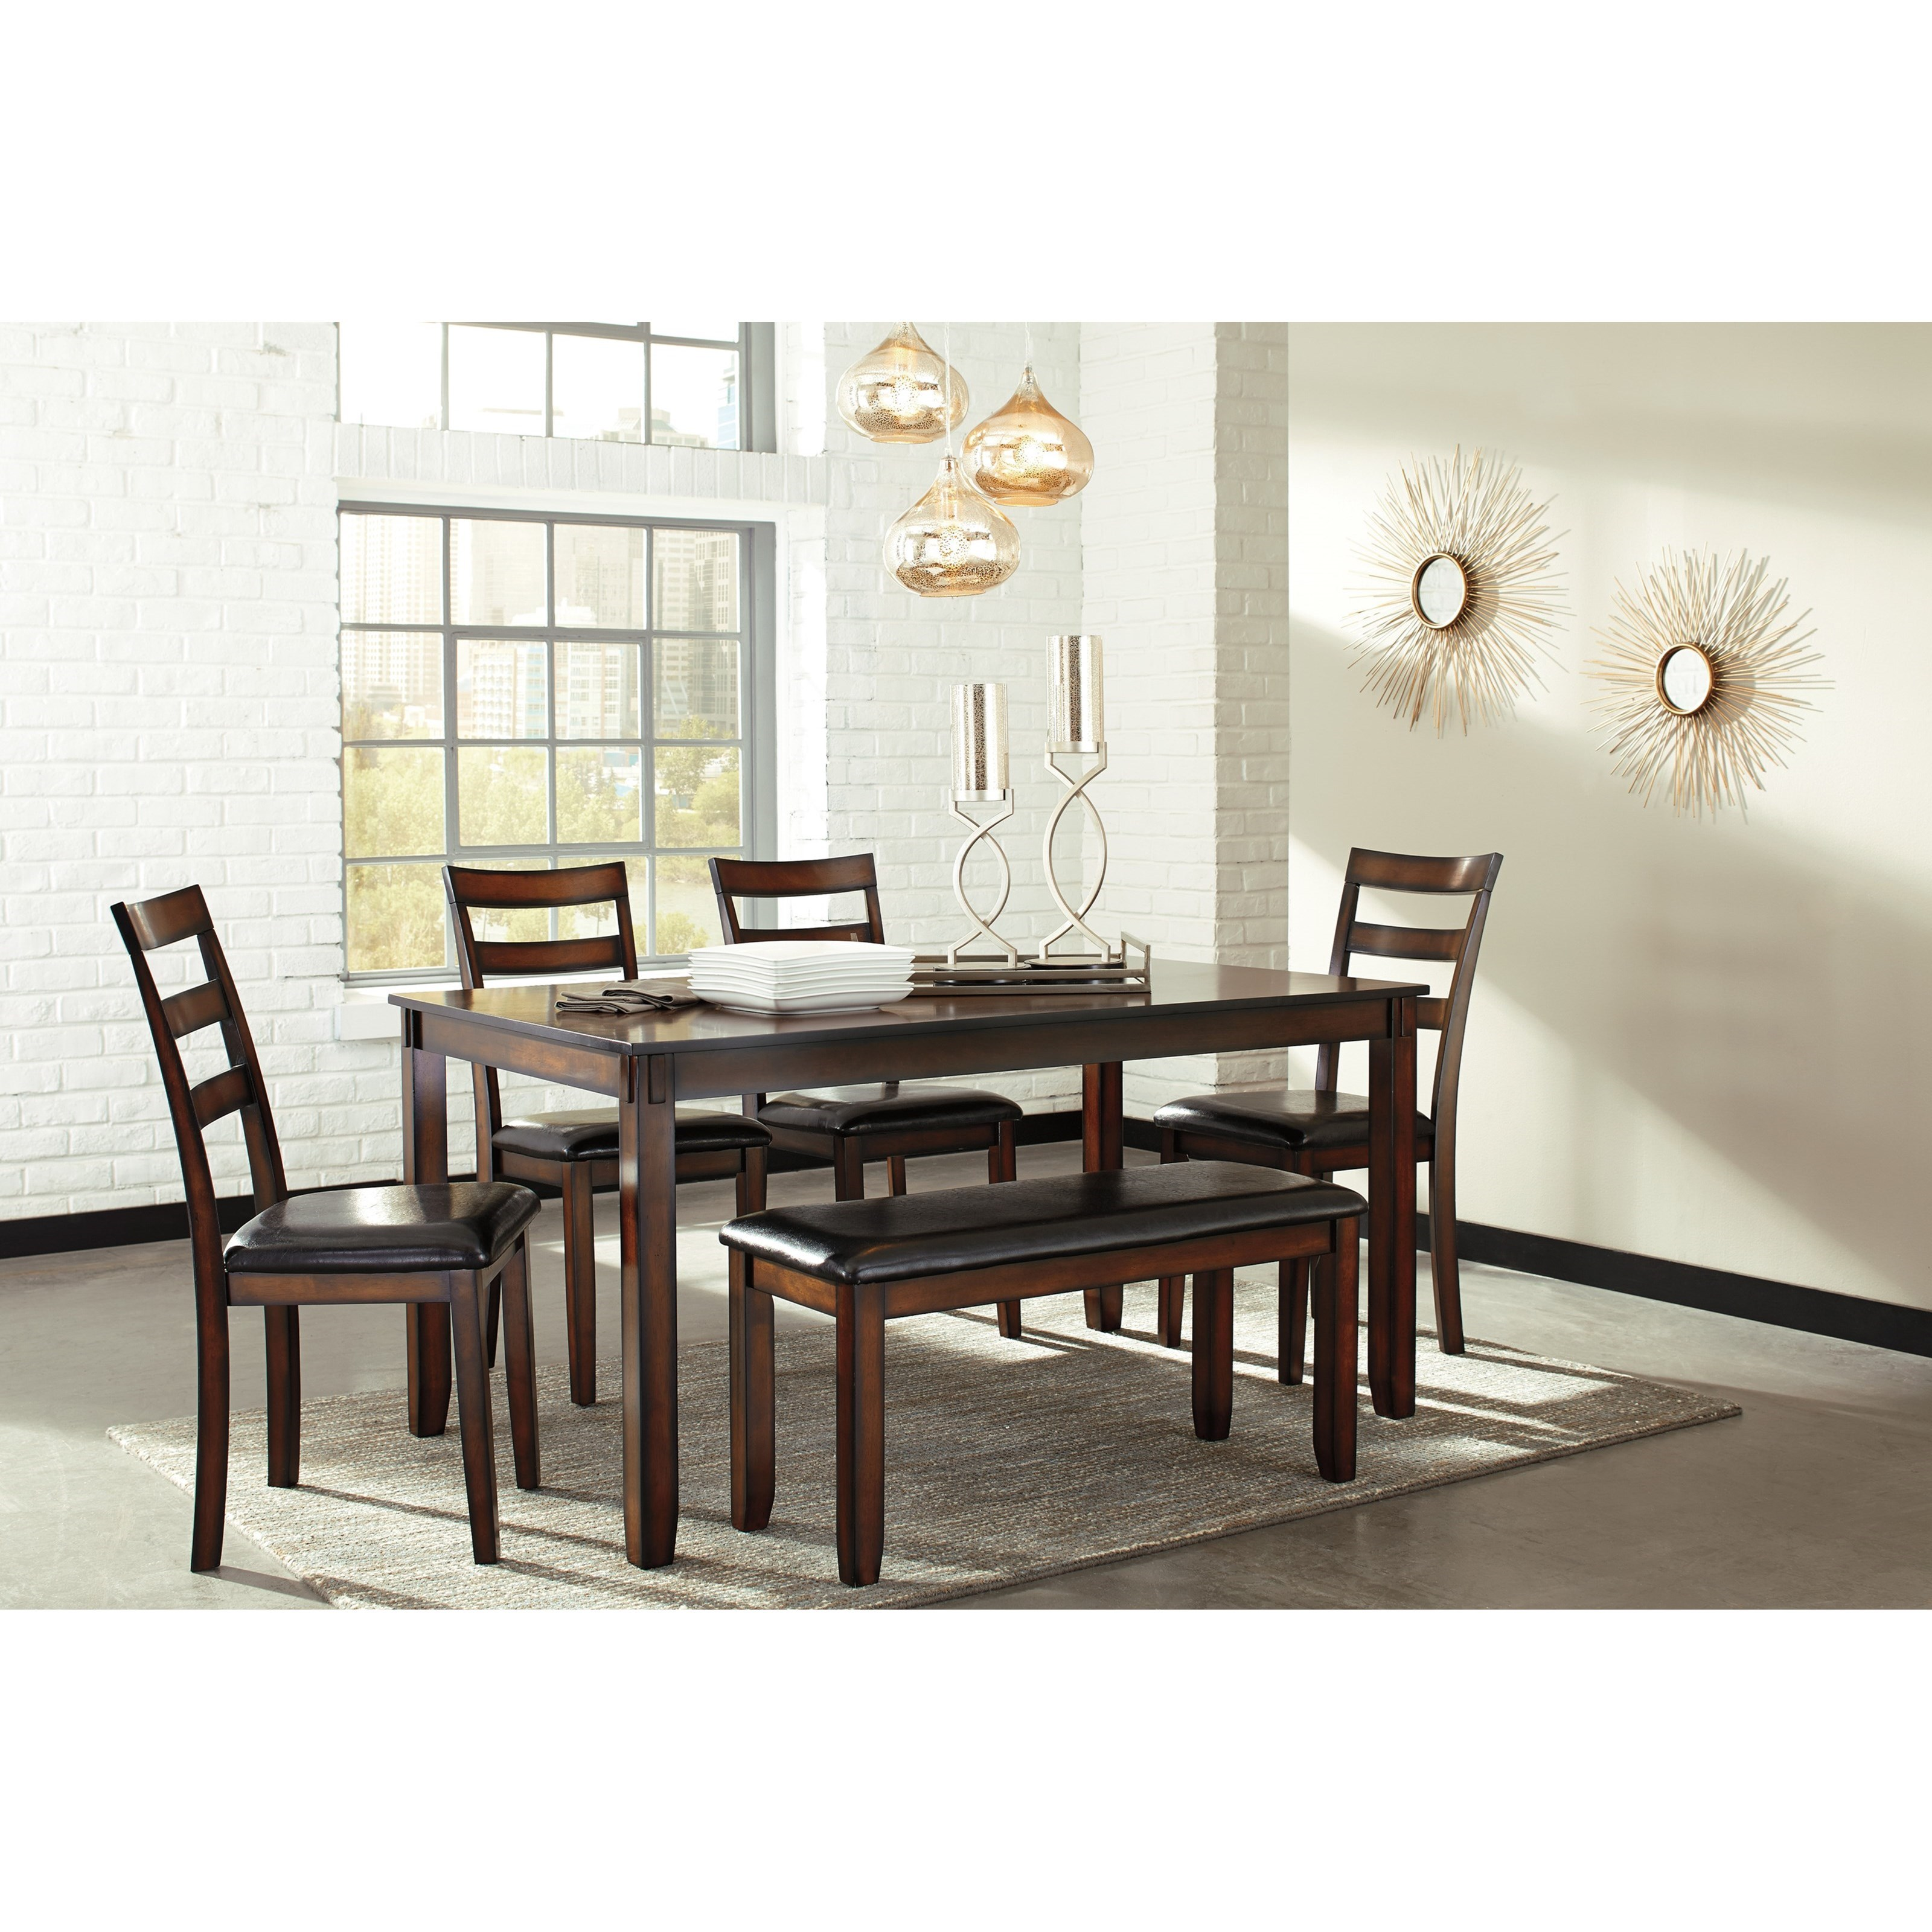 Burnished Brown 6-Piece Dining Table Set With Bench By